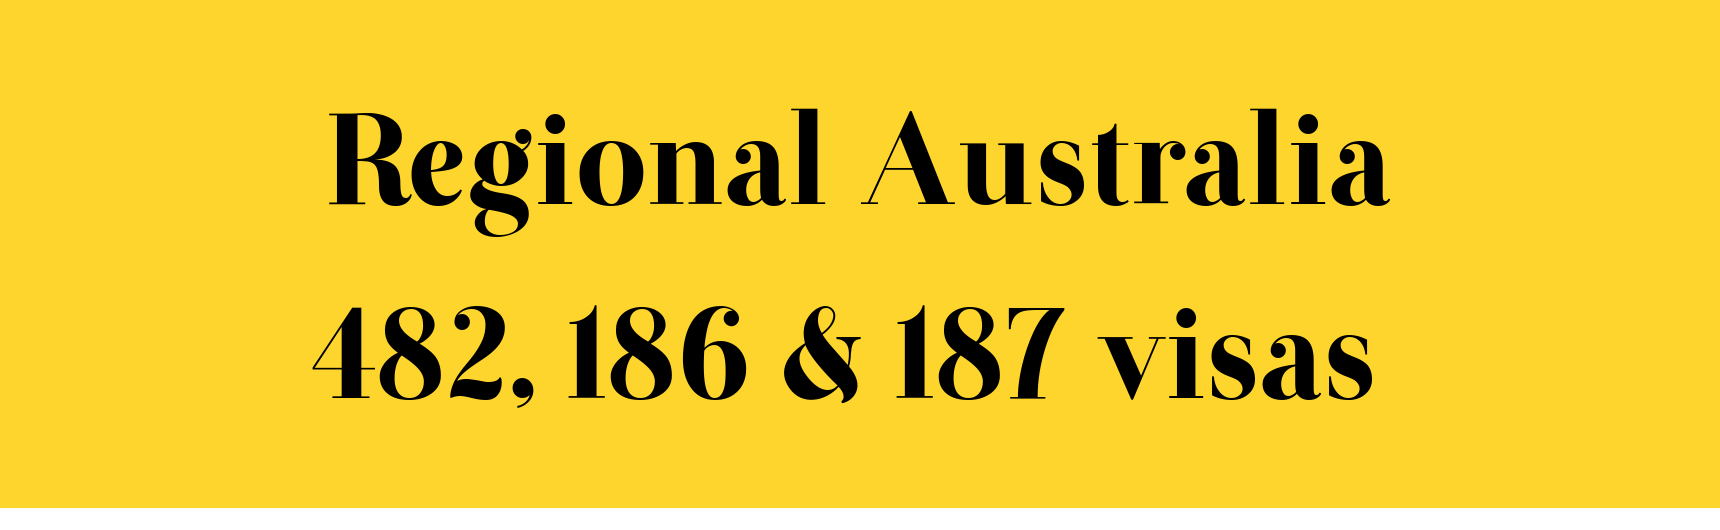 Regional Australia Regional Australia For Subclasses 482 186 And 187 Visas Smart